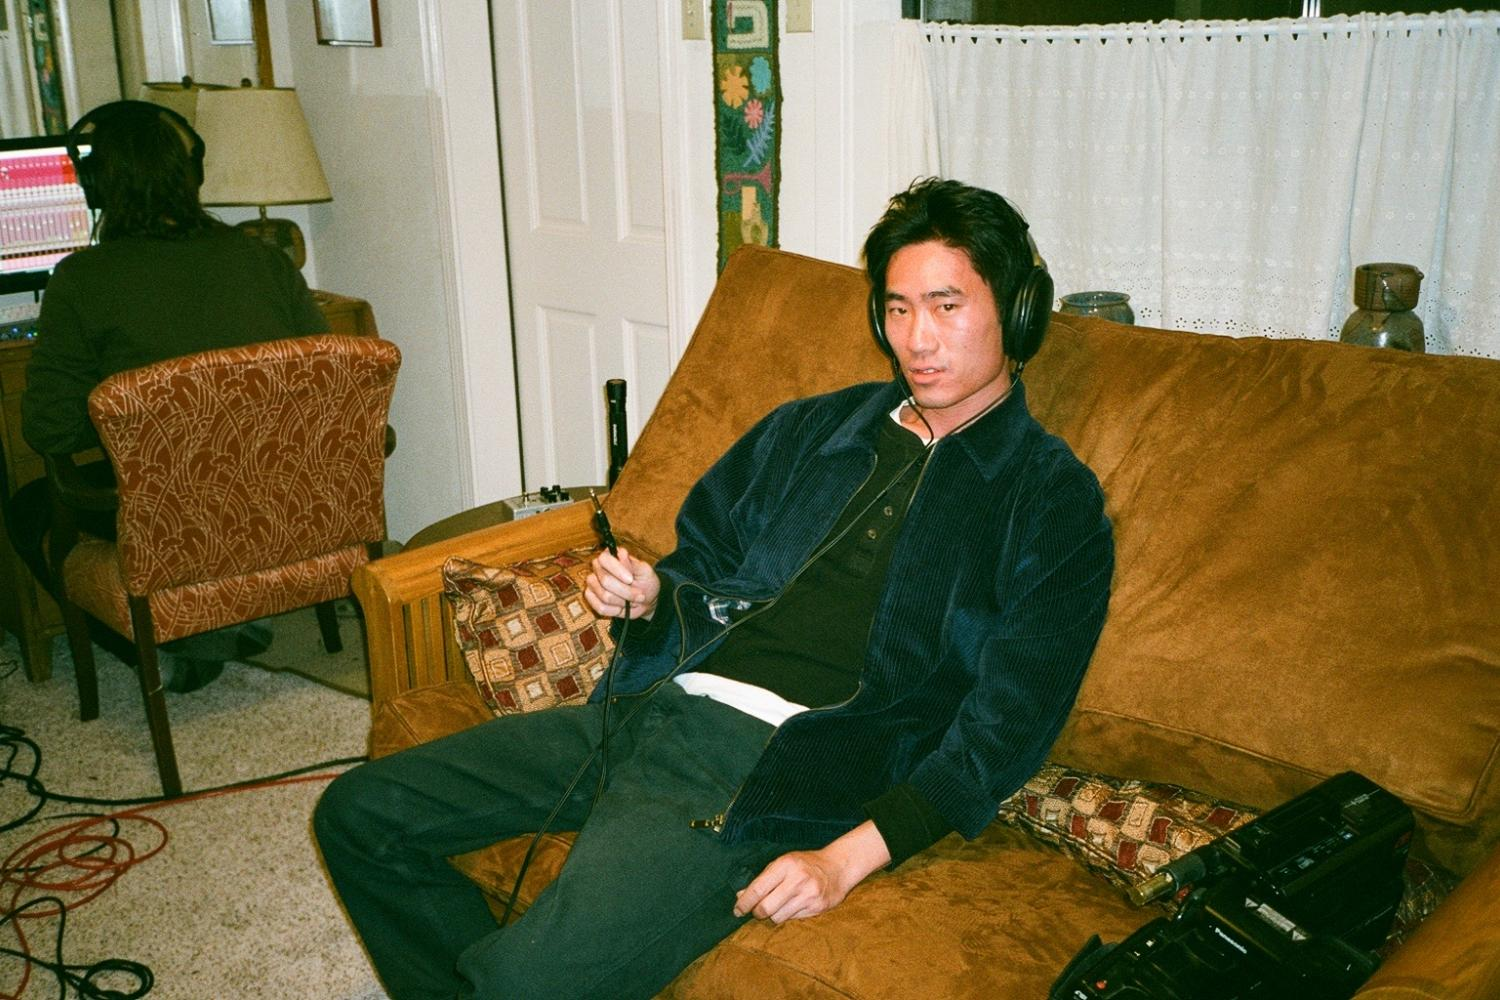 Diagonal shot of Alex Shen sitting on an old couch wearing headphones